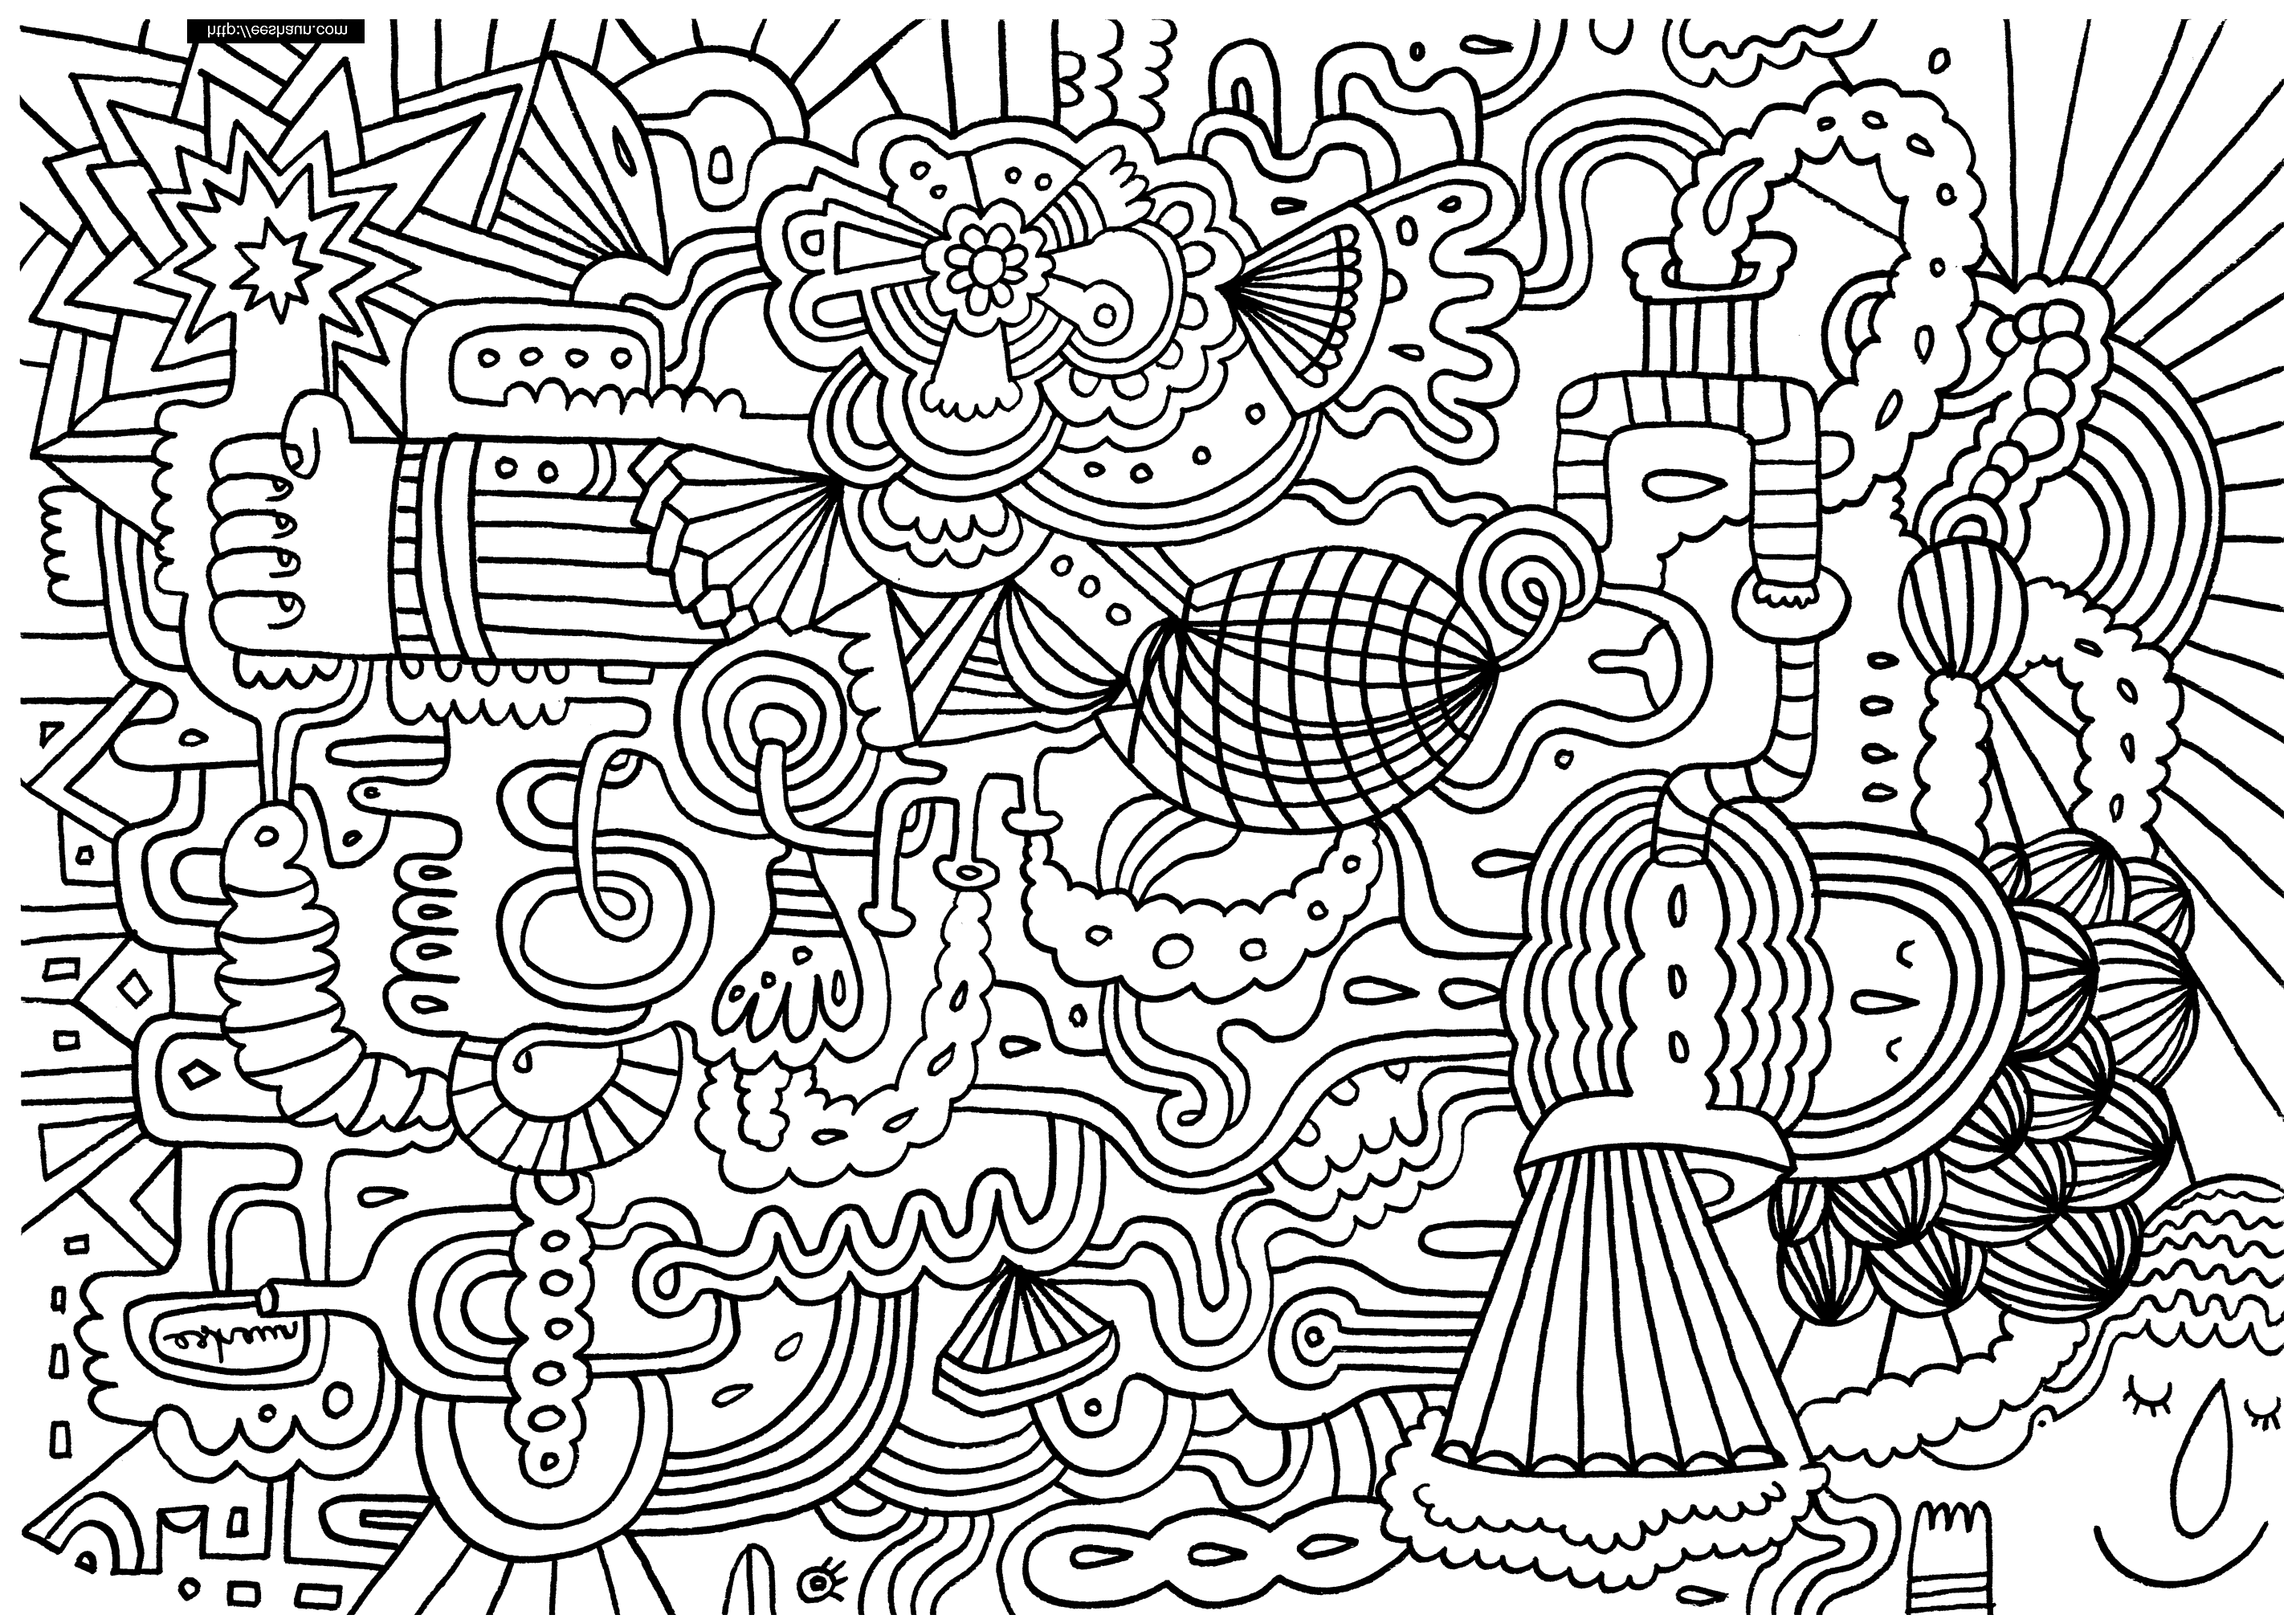 doodle pages doodle art free to color for kids doodle art kids doodle pages